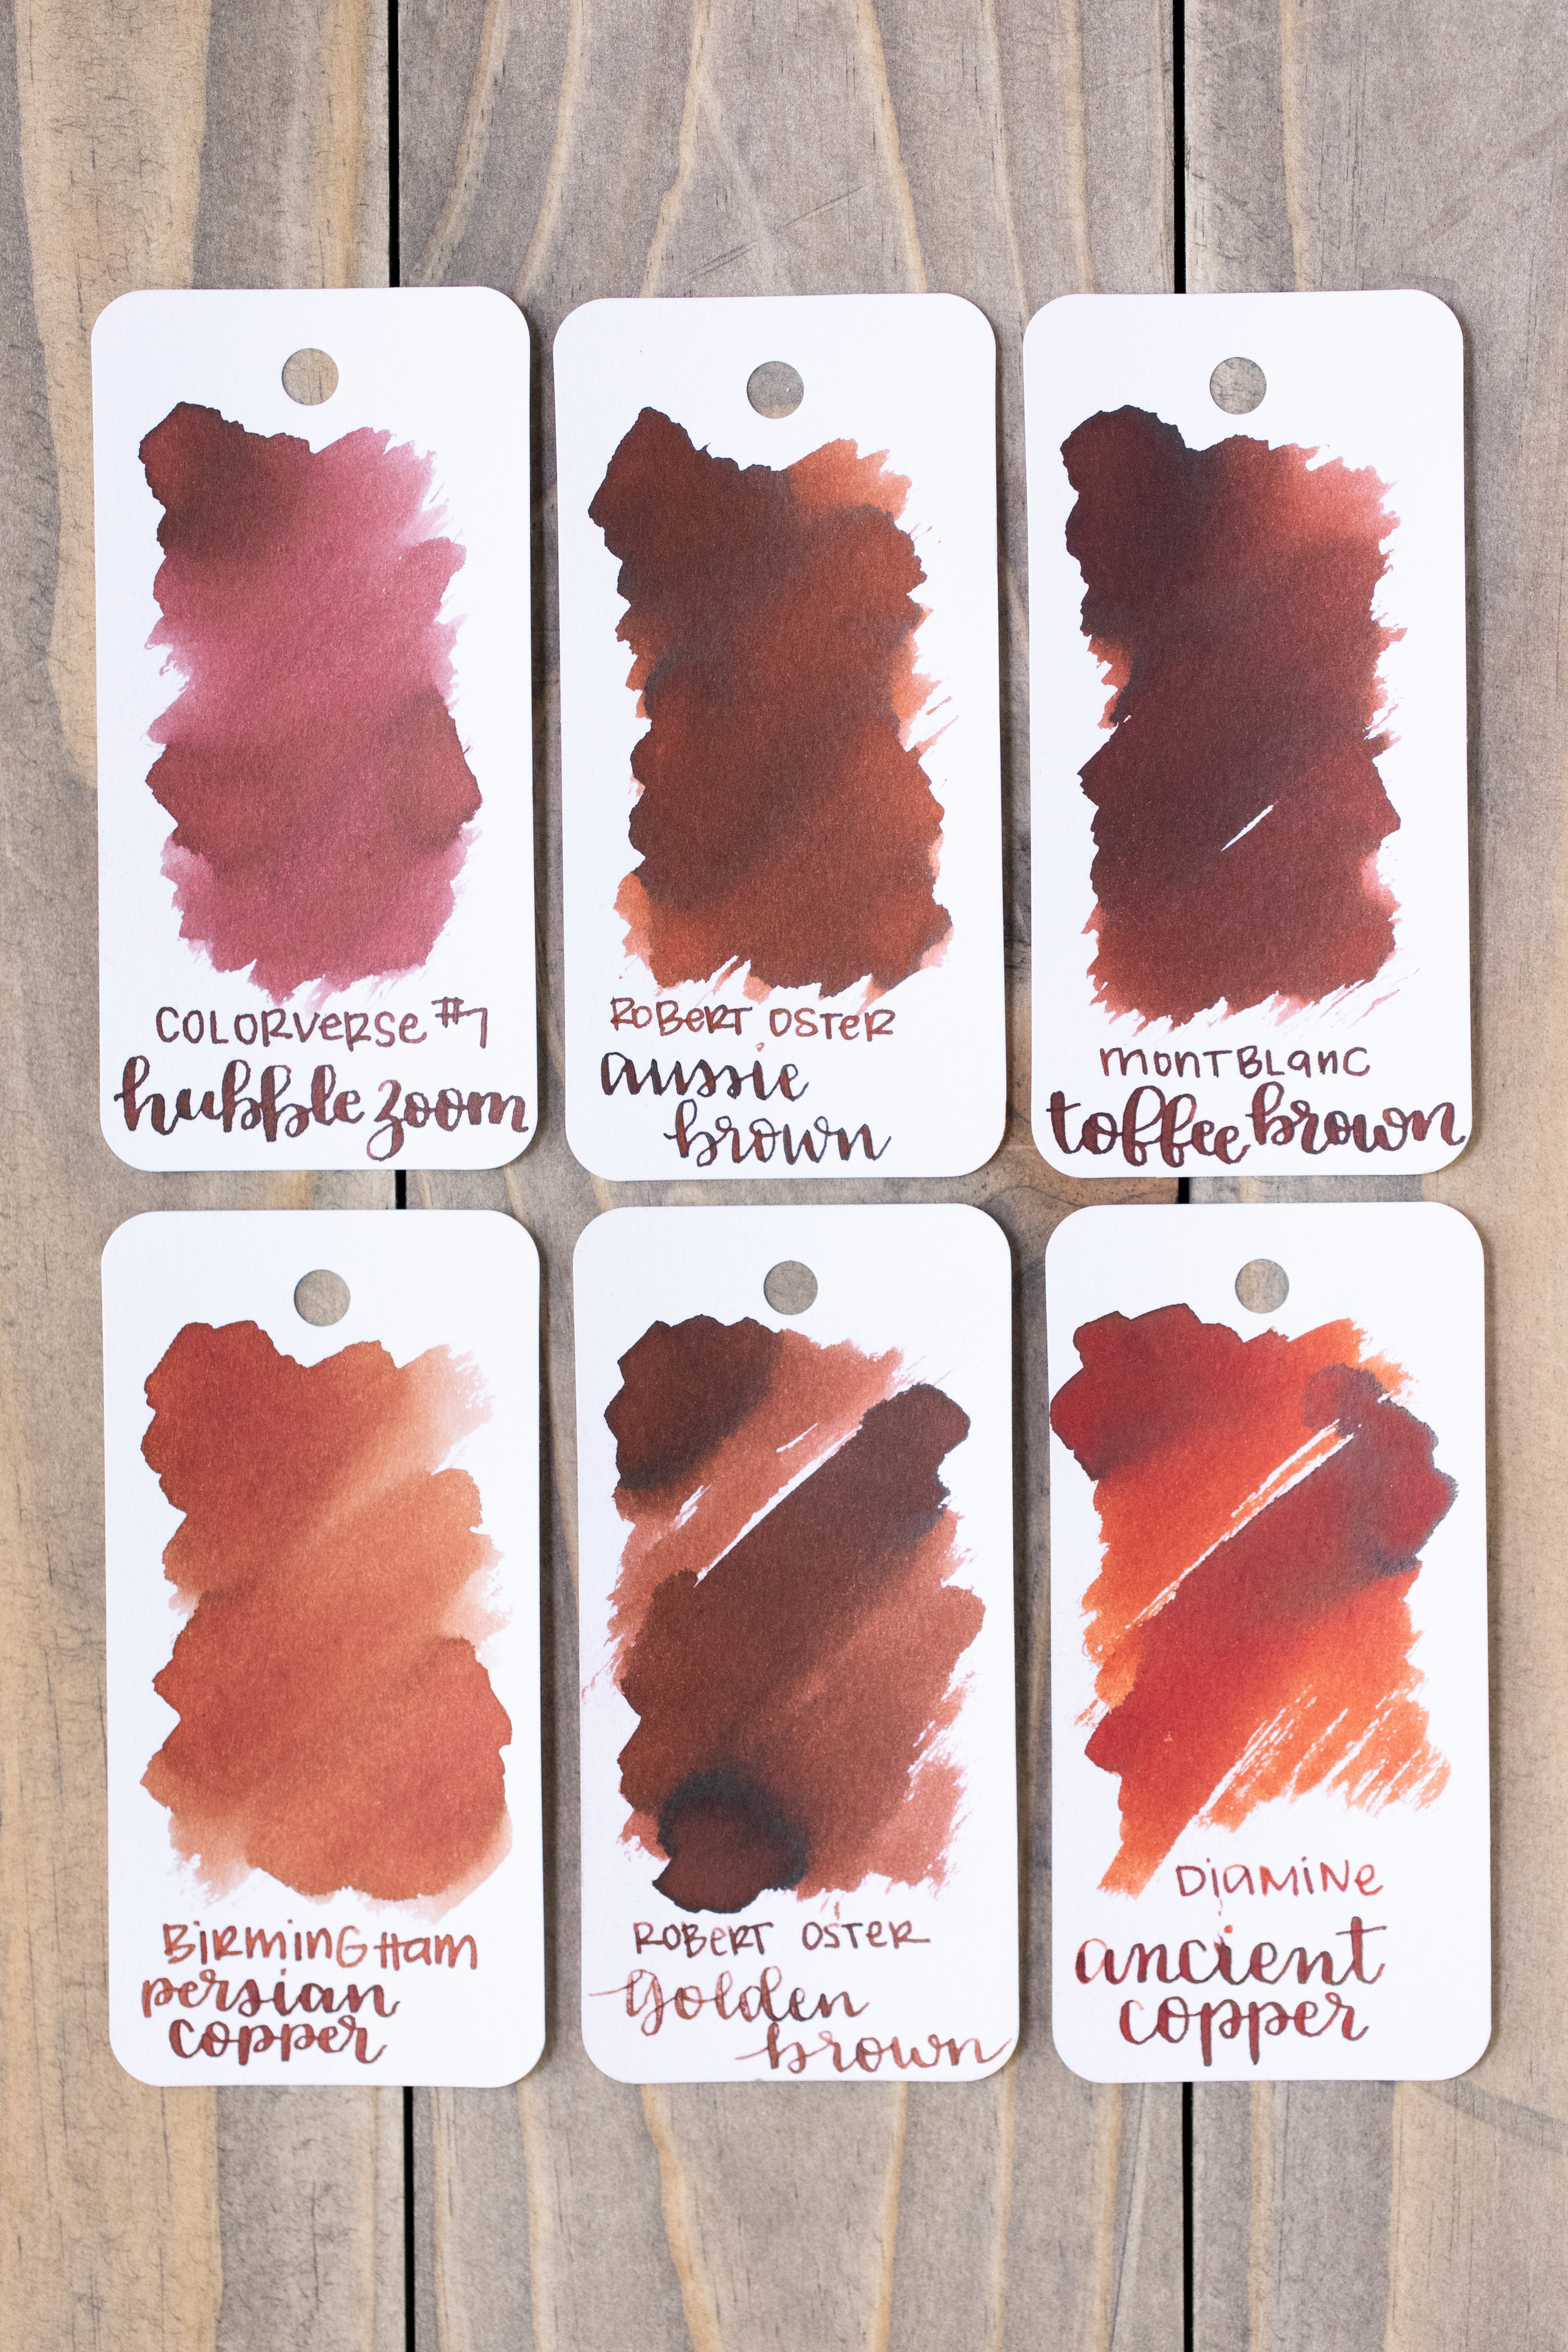 Similar inks: - Montblanc Toffee Brown has a little bit more red in it than Aussie Brown does. Click here to see the Robert Oster inks together.